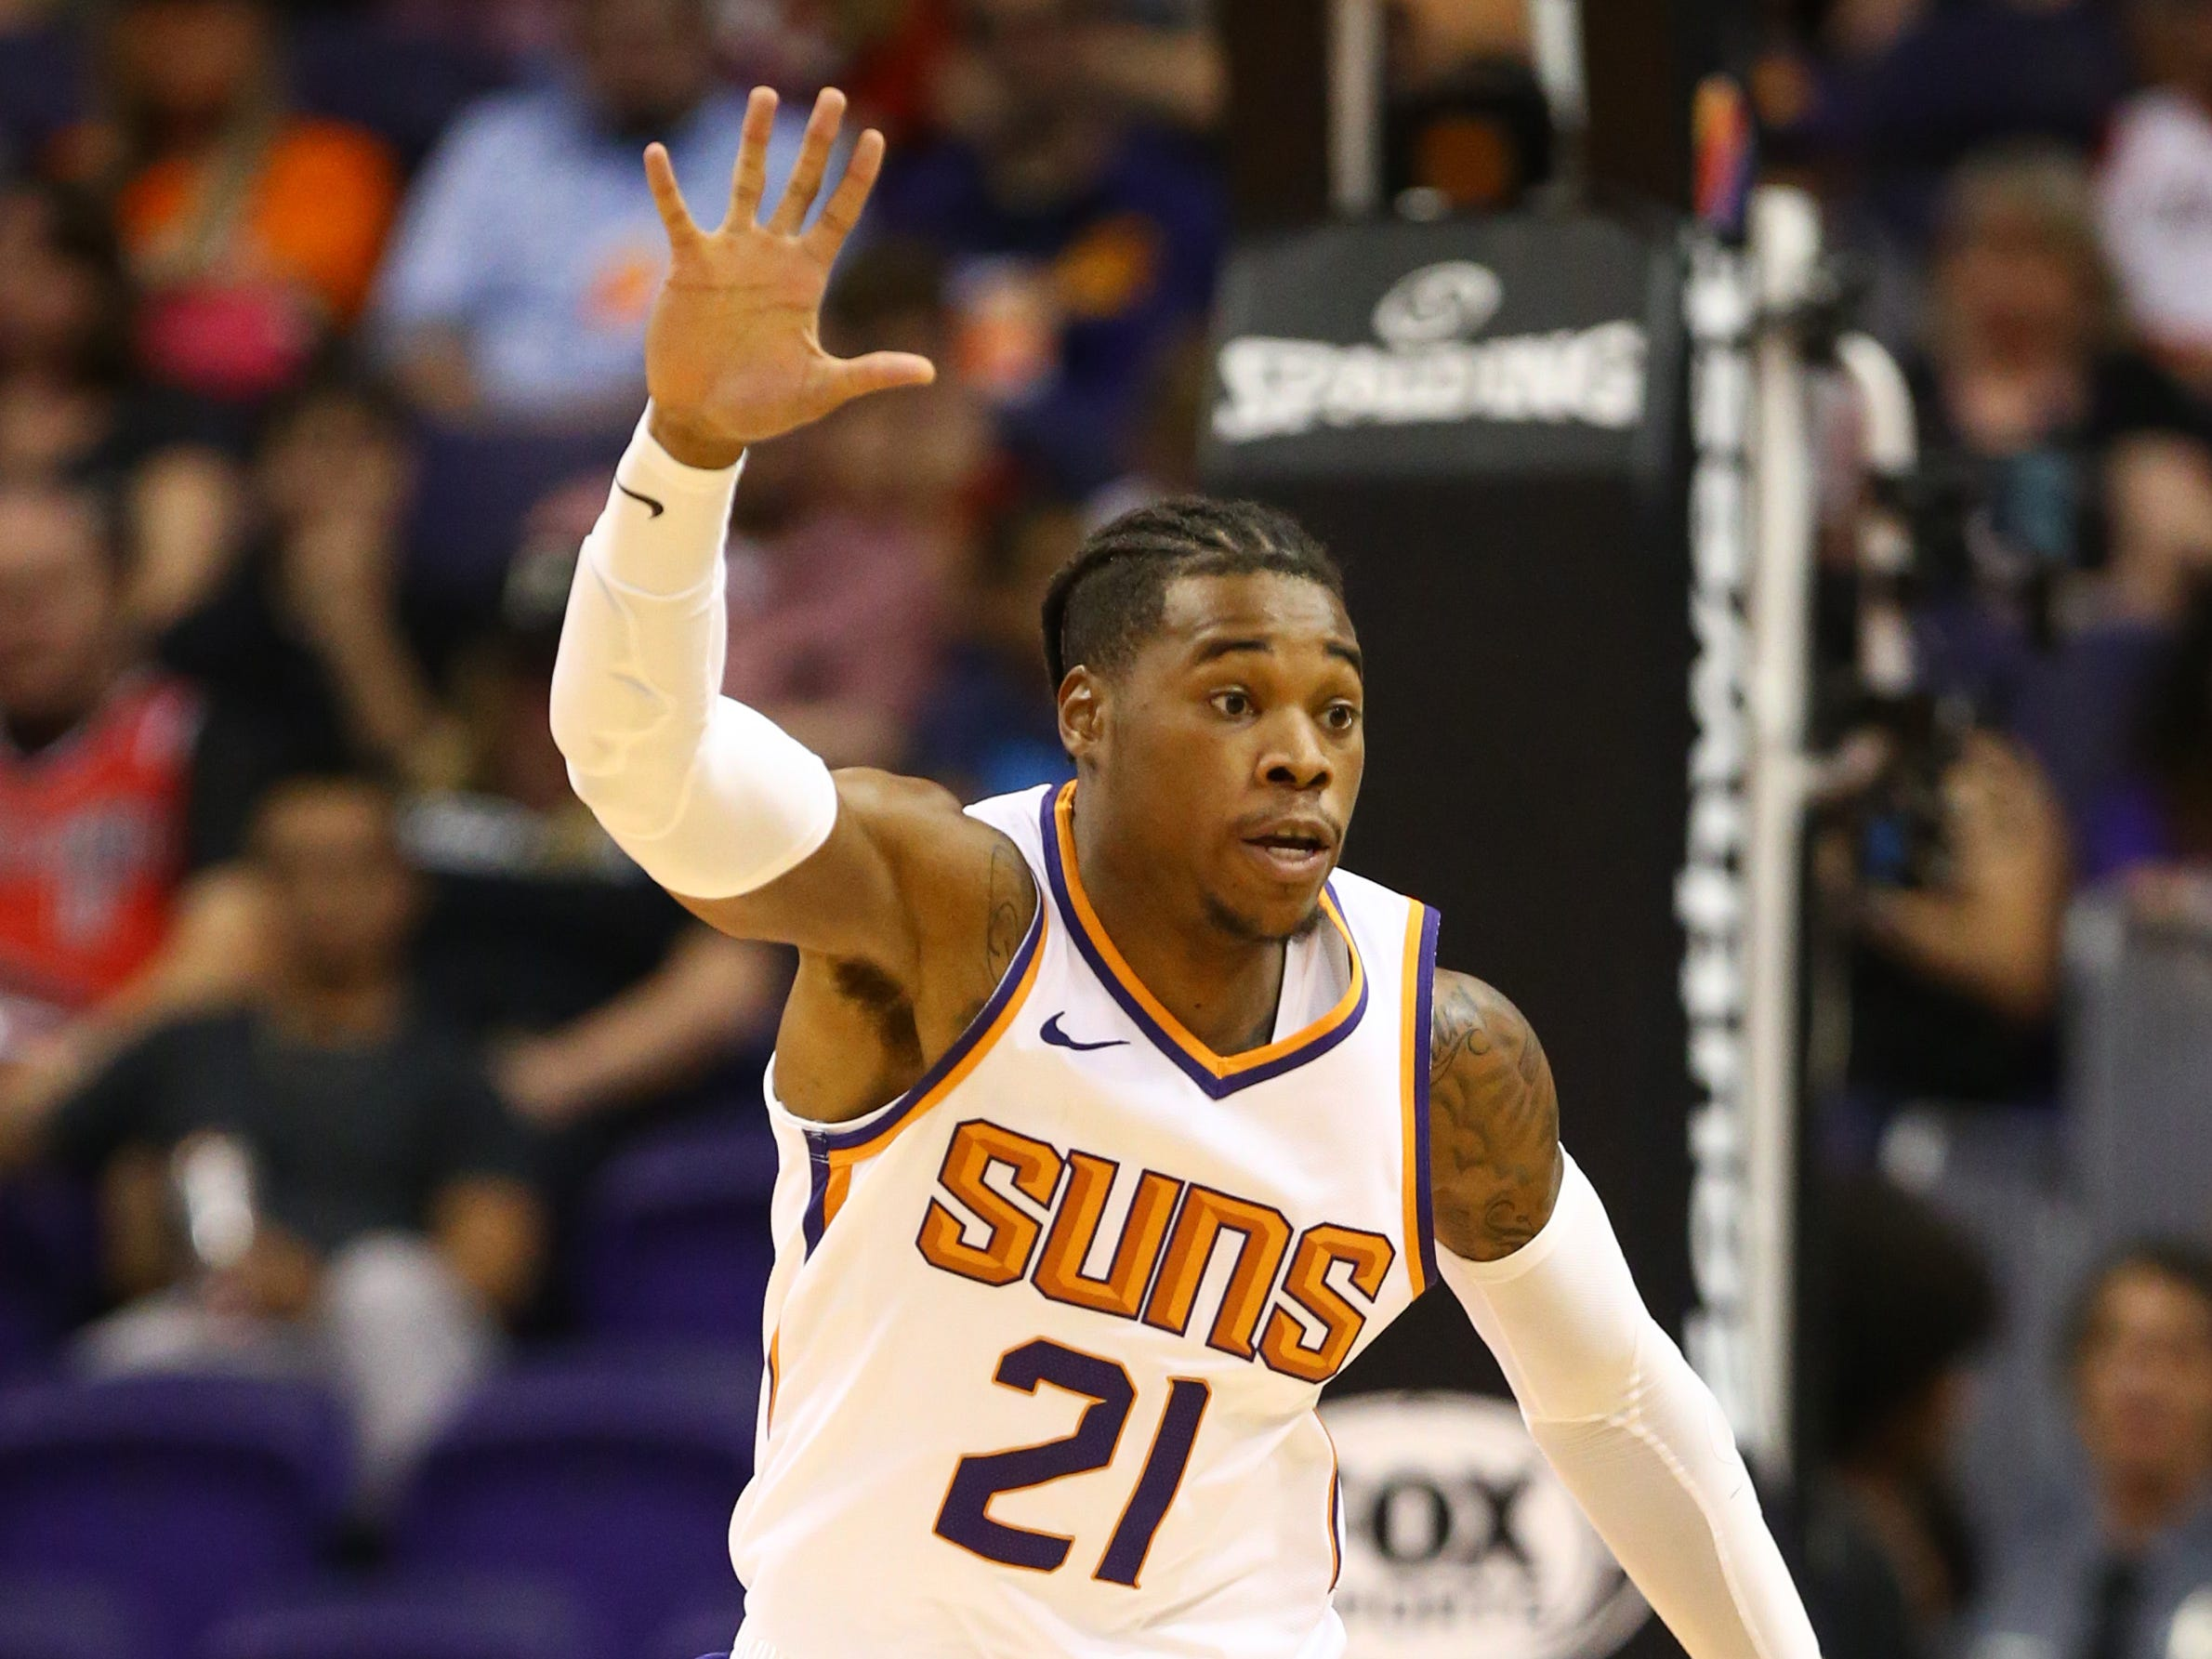 Phoenix Suns forward Richaun Holmes against the Portland Trail Blazers during a preseason game at Talking Stick Resort Arena on Oct. 5, 2018, in Phoenix, Ariz.